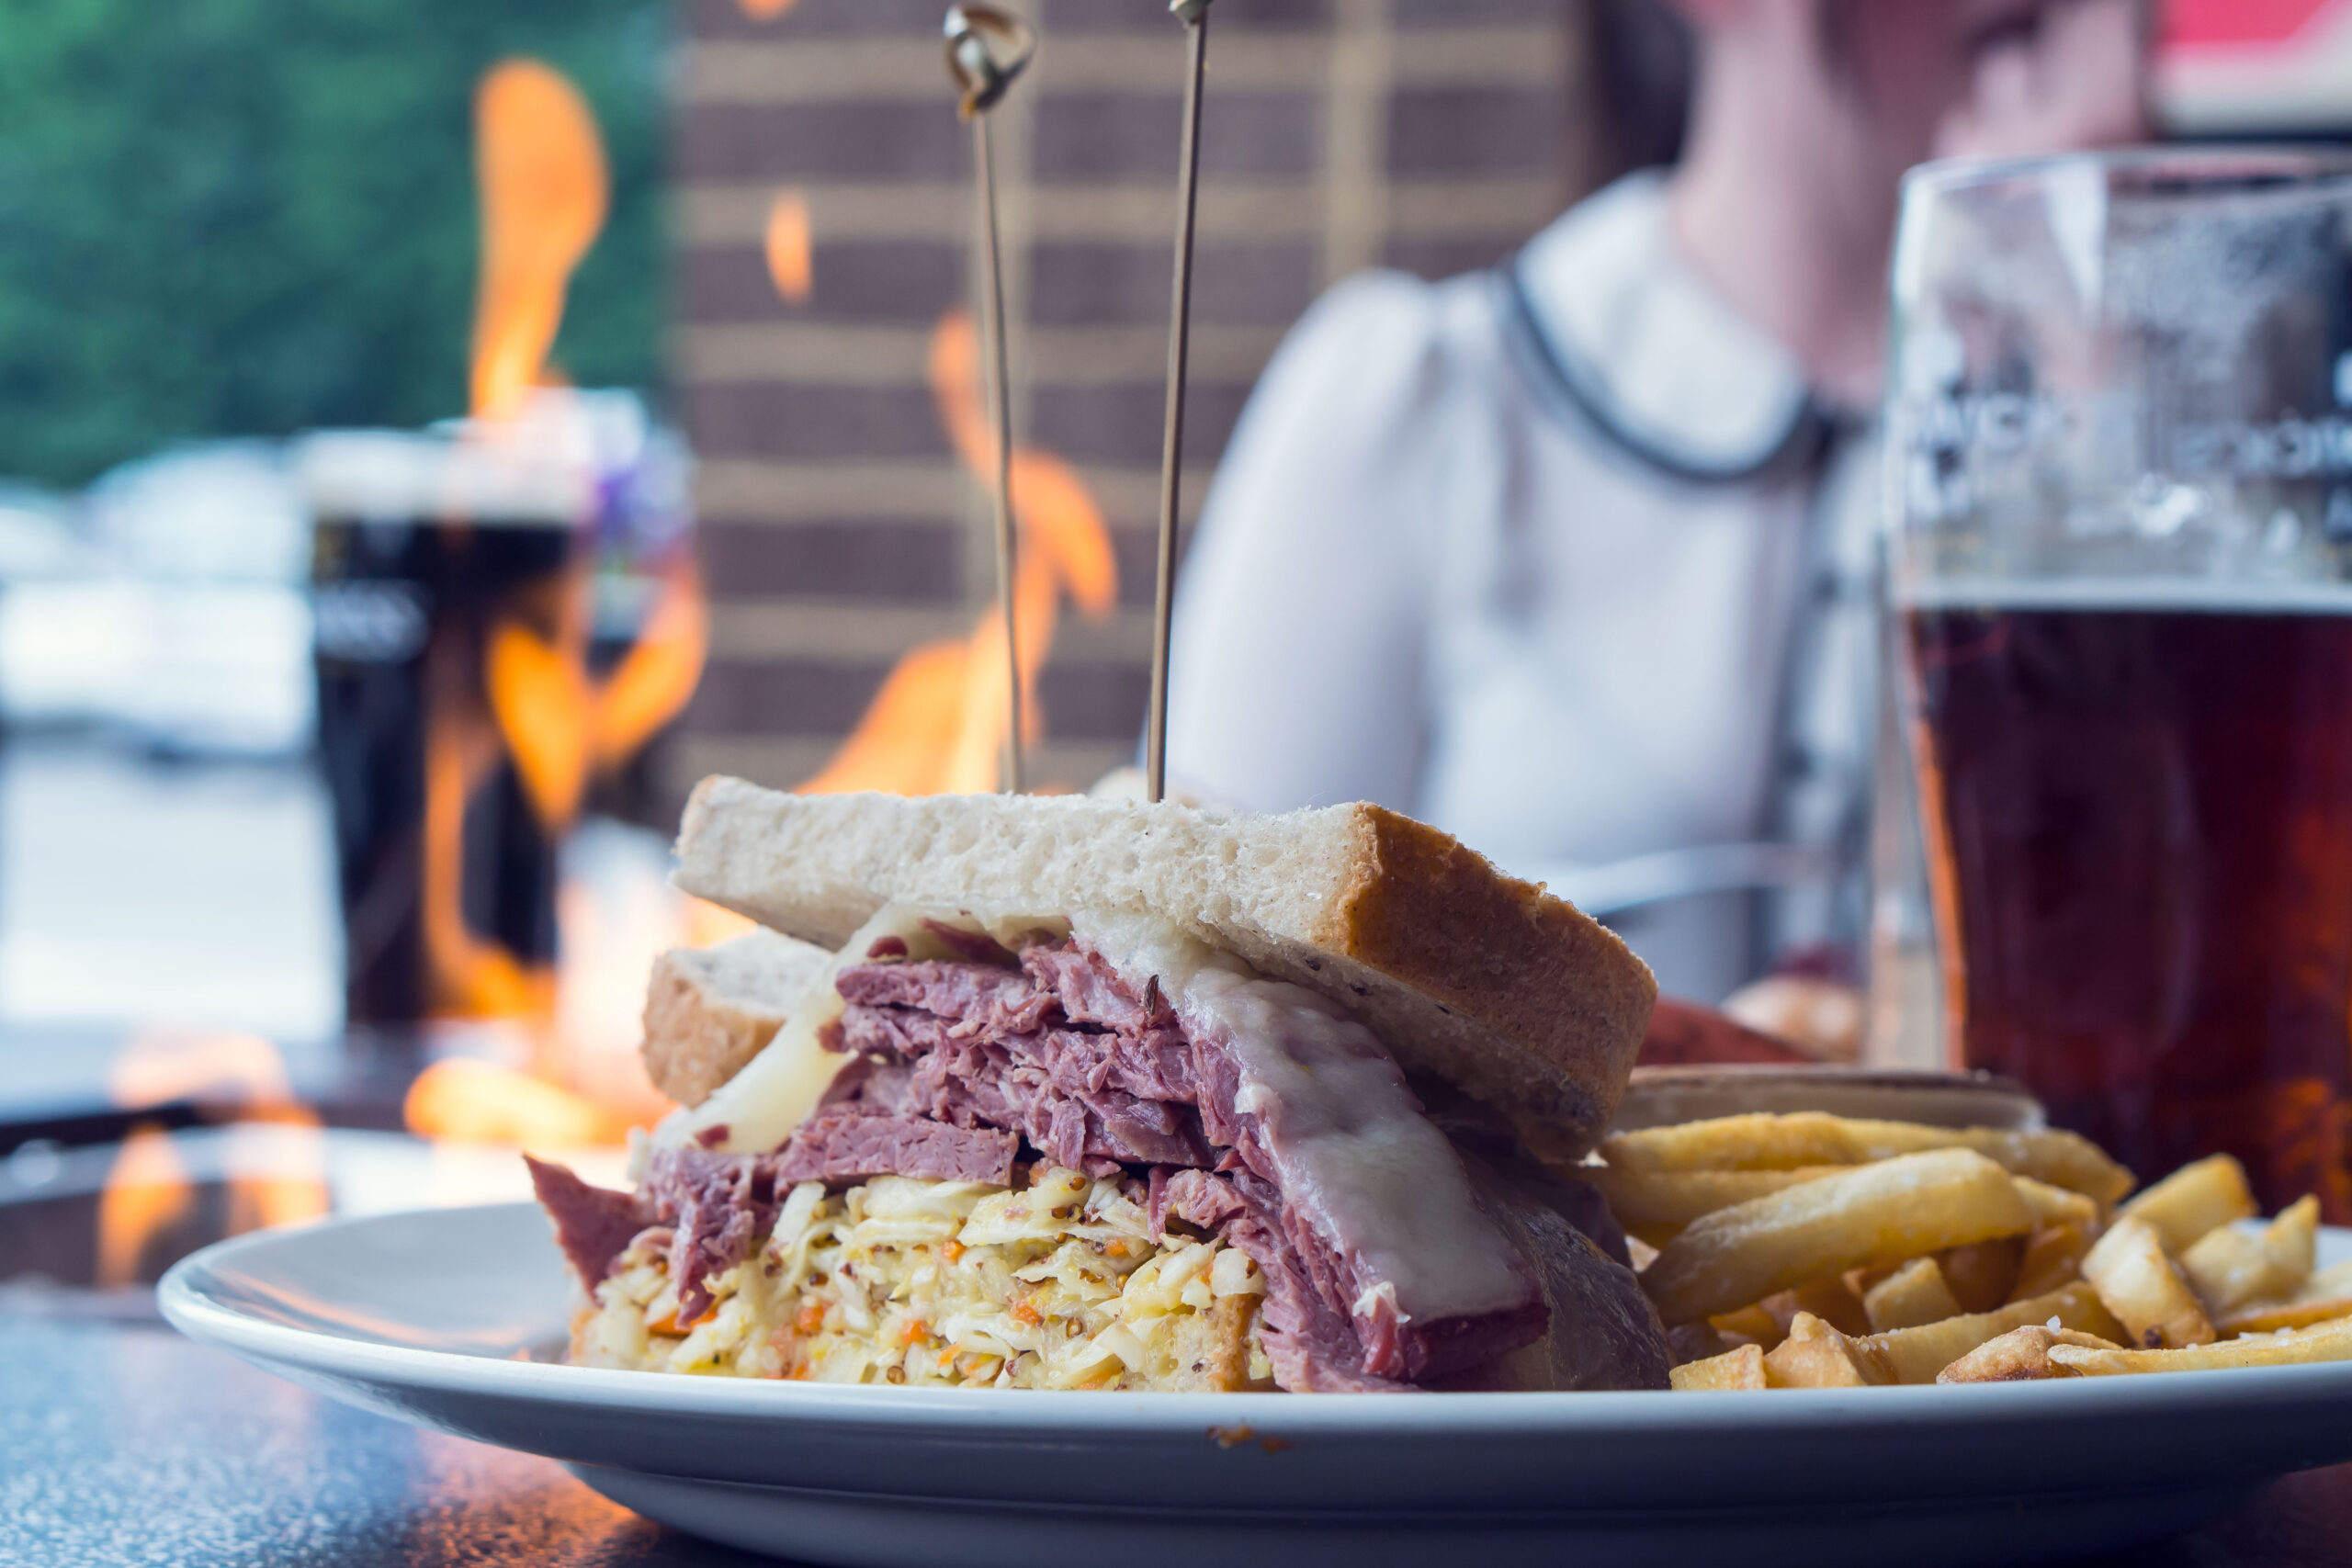 Corned beef sandwich with Smithwicks beer, at an outdoor firepit with female customer in background.